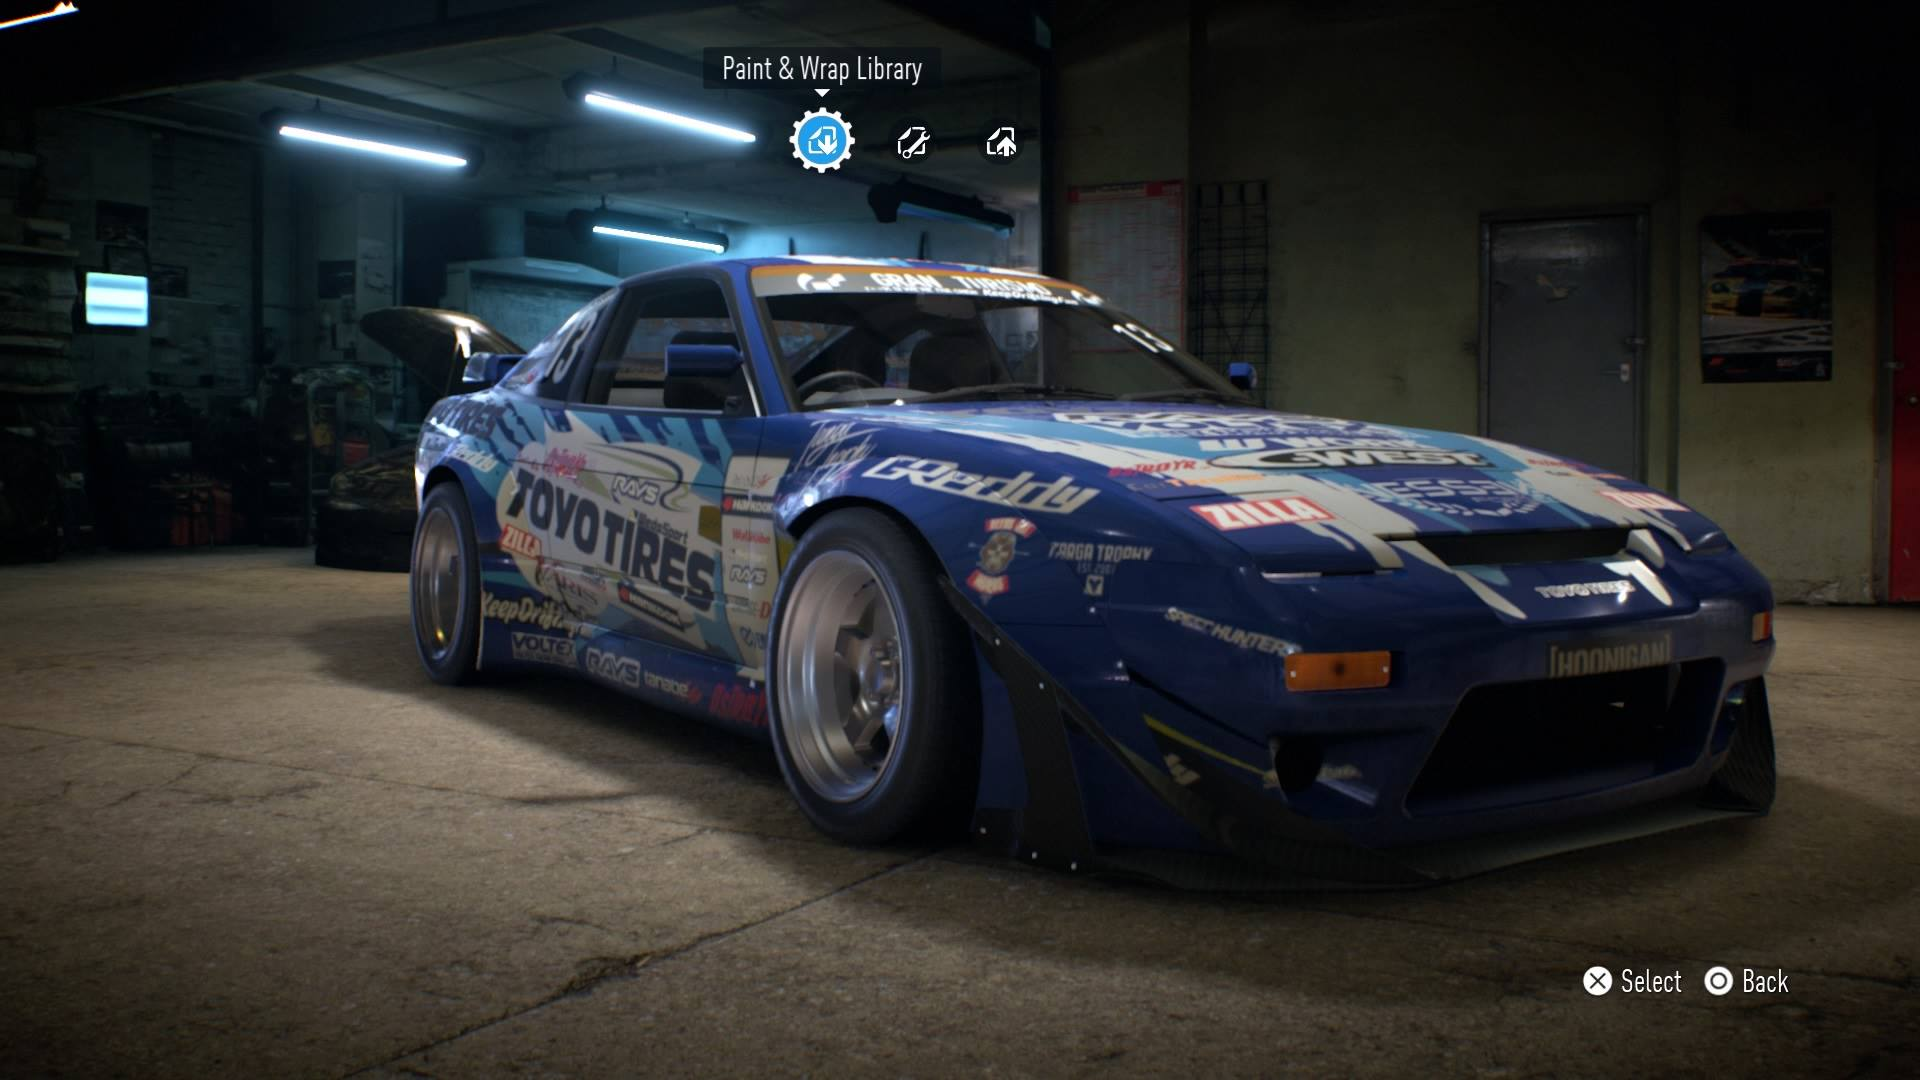 Need for speed showcase update 16 best wraps to download pt 1 gallery player one